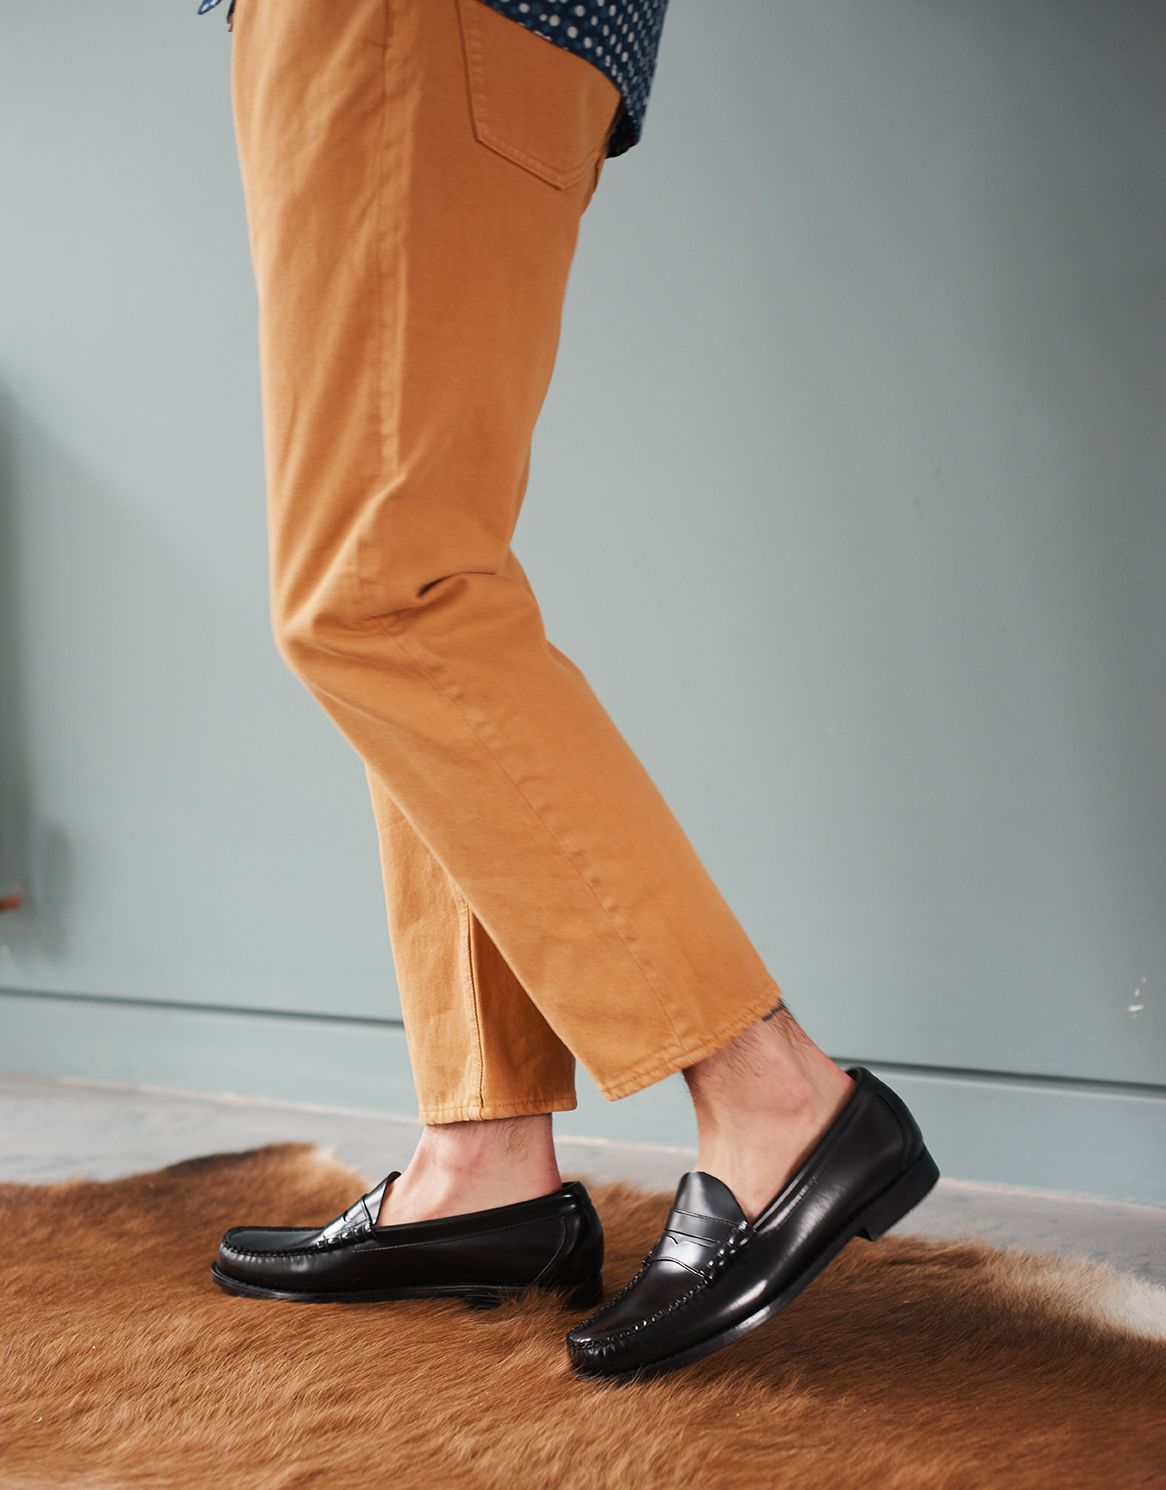 d35eef19232 These loafers have been worn for decades by celebrities such as Michael  Jackson